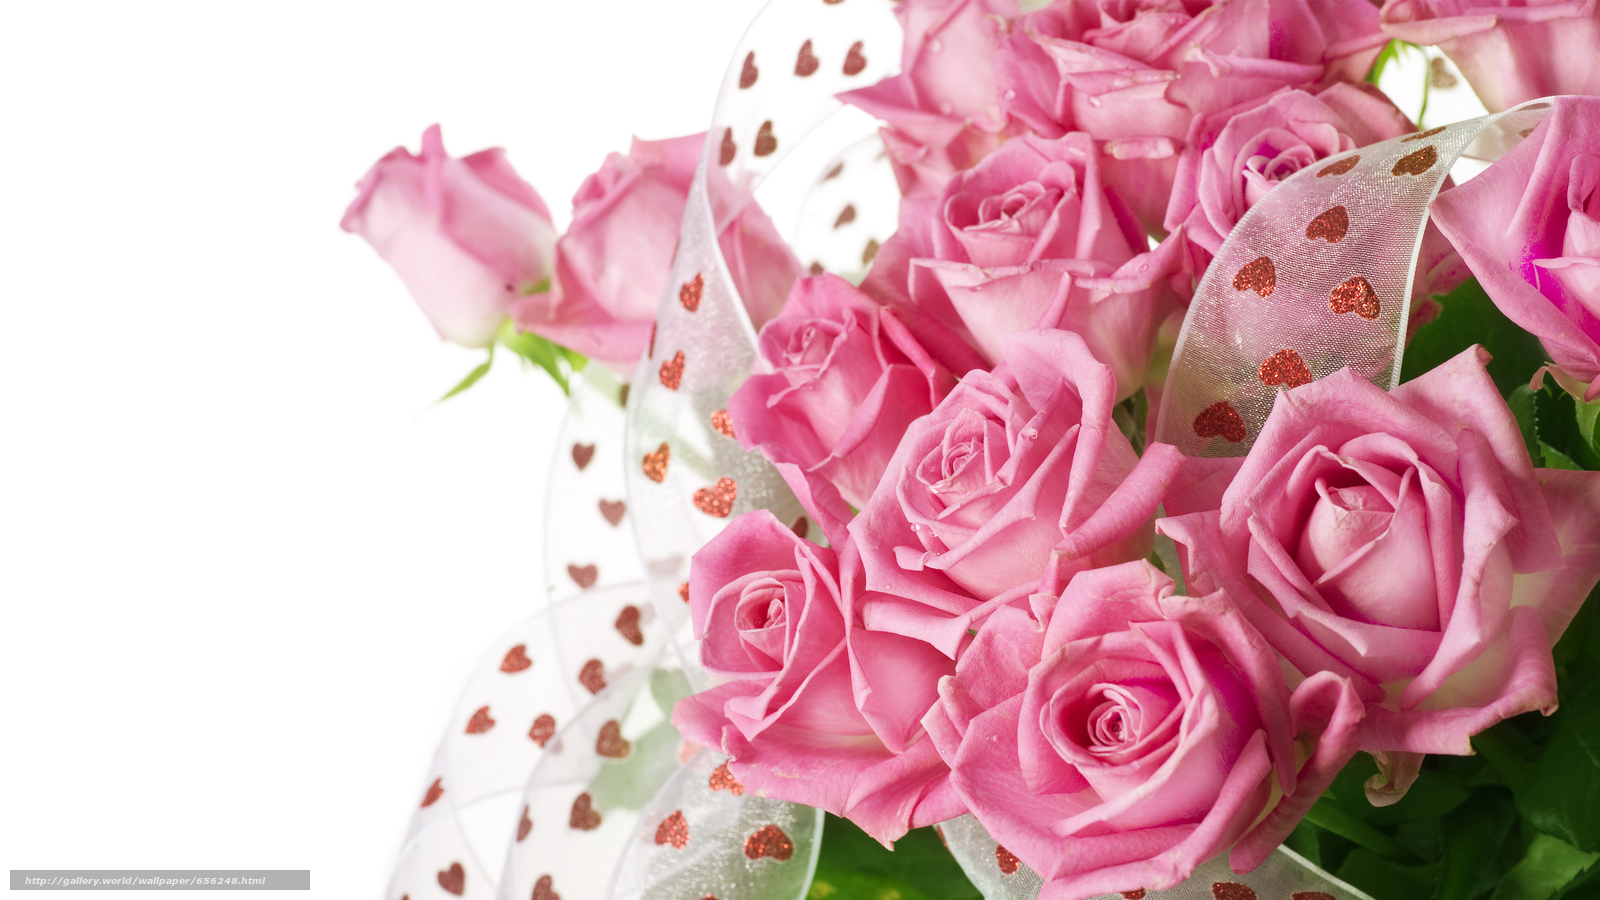 Download wallpaper Personas by Kisenok,  Roses,  pink,  Flowers free desktop wallpaper in the resolution 10027x5640 — picture №656248